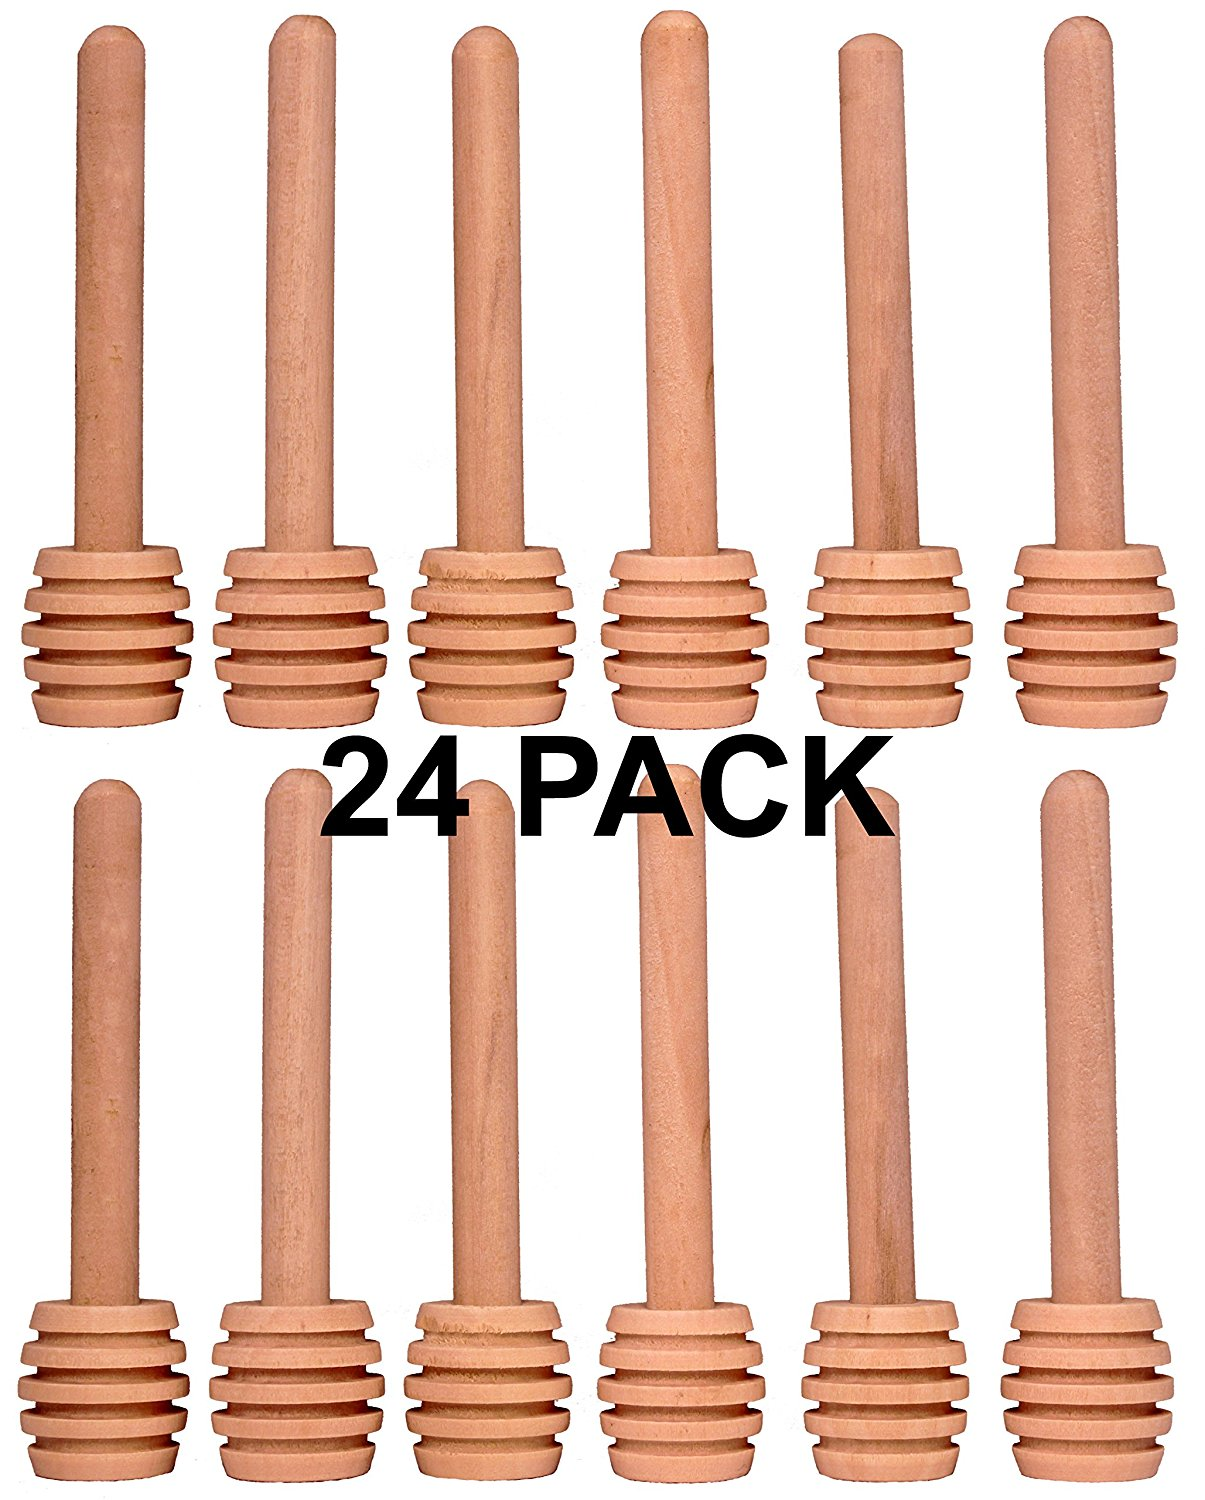 CynKen 5pcs OD 1.5mm x 1.2mm ID Stainless Pipe 304 Stainless Steel Capillary Tube Length 200mm